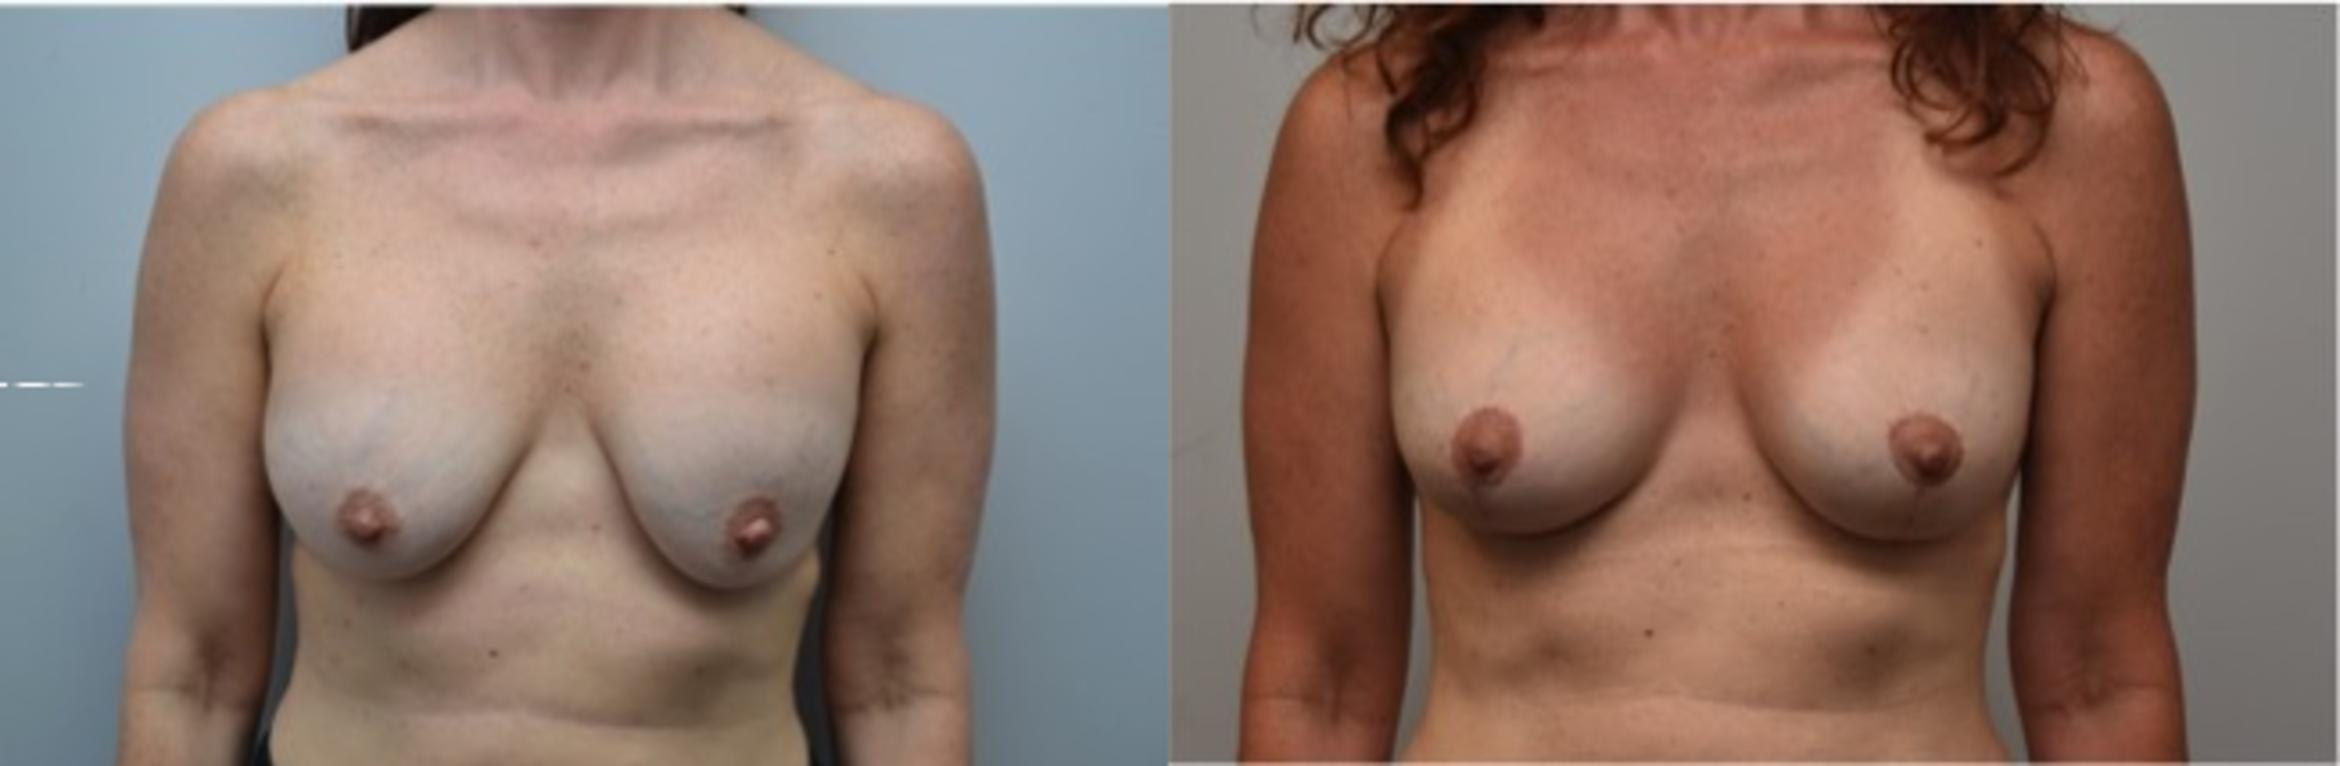 Breast Augmentation Revision Case 291 Before & After View #1 | Latham, New York | Rockmore Plastic Surgery